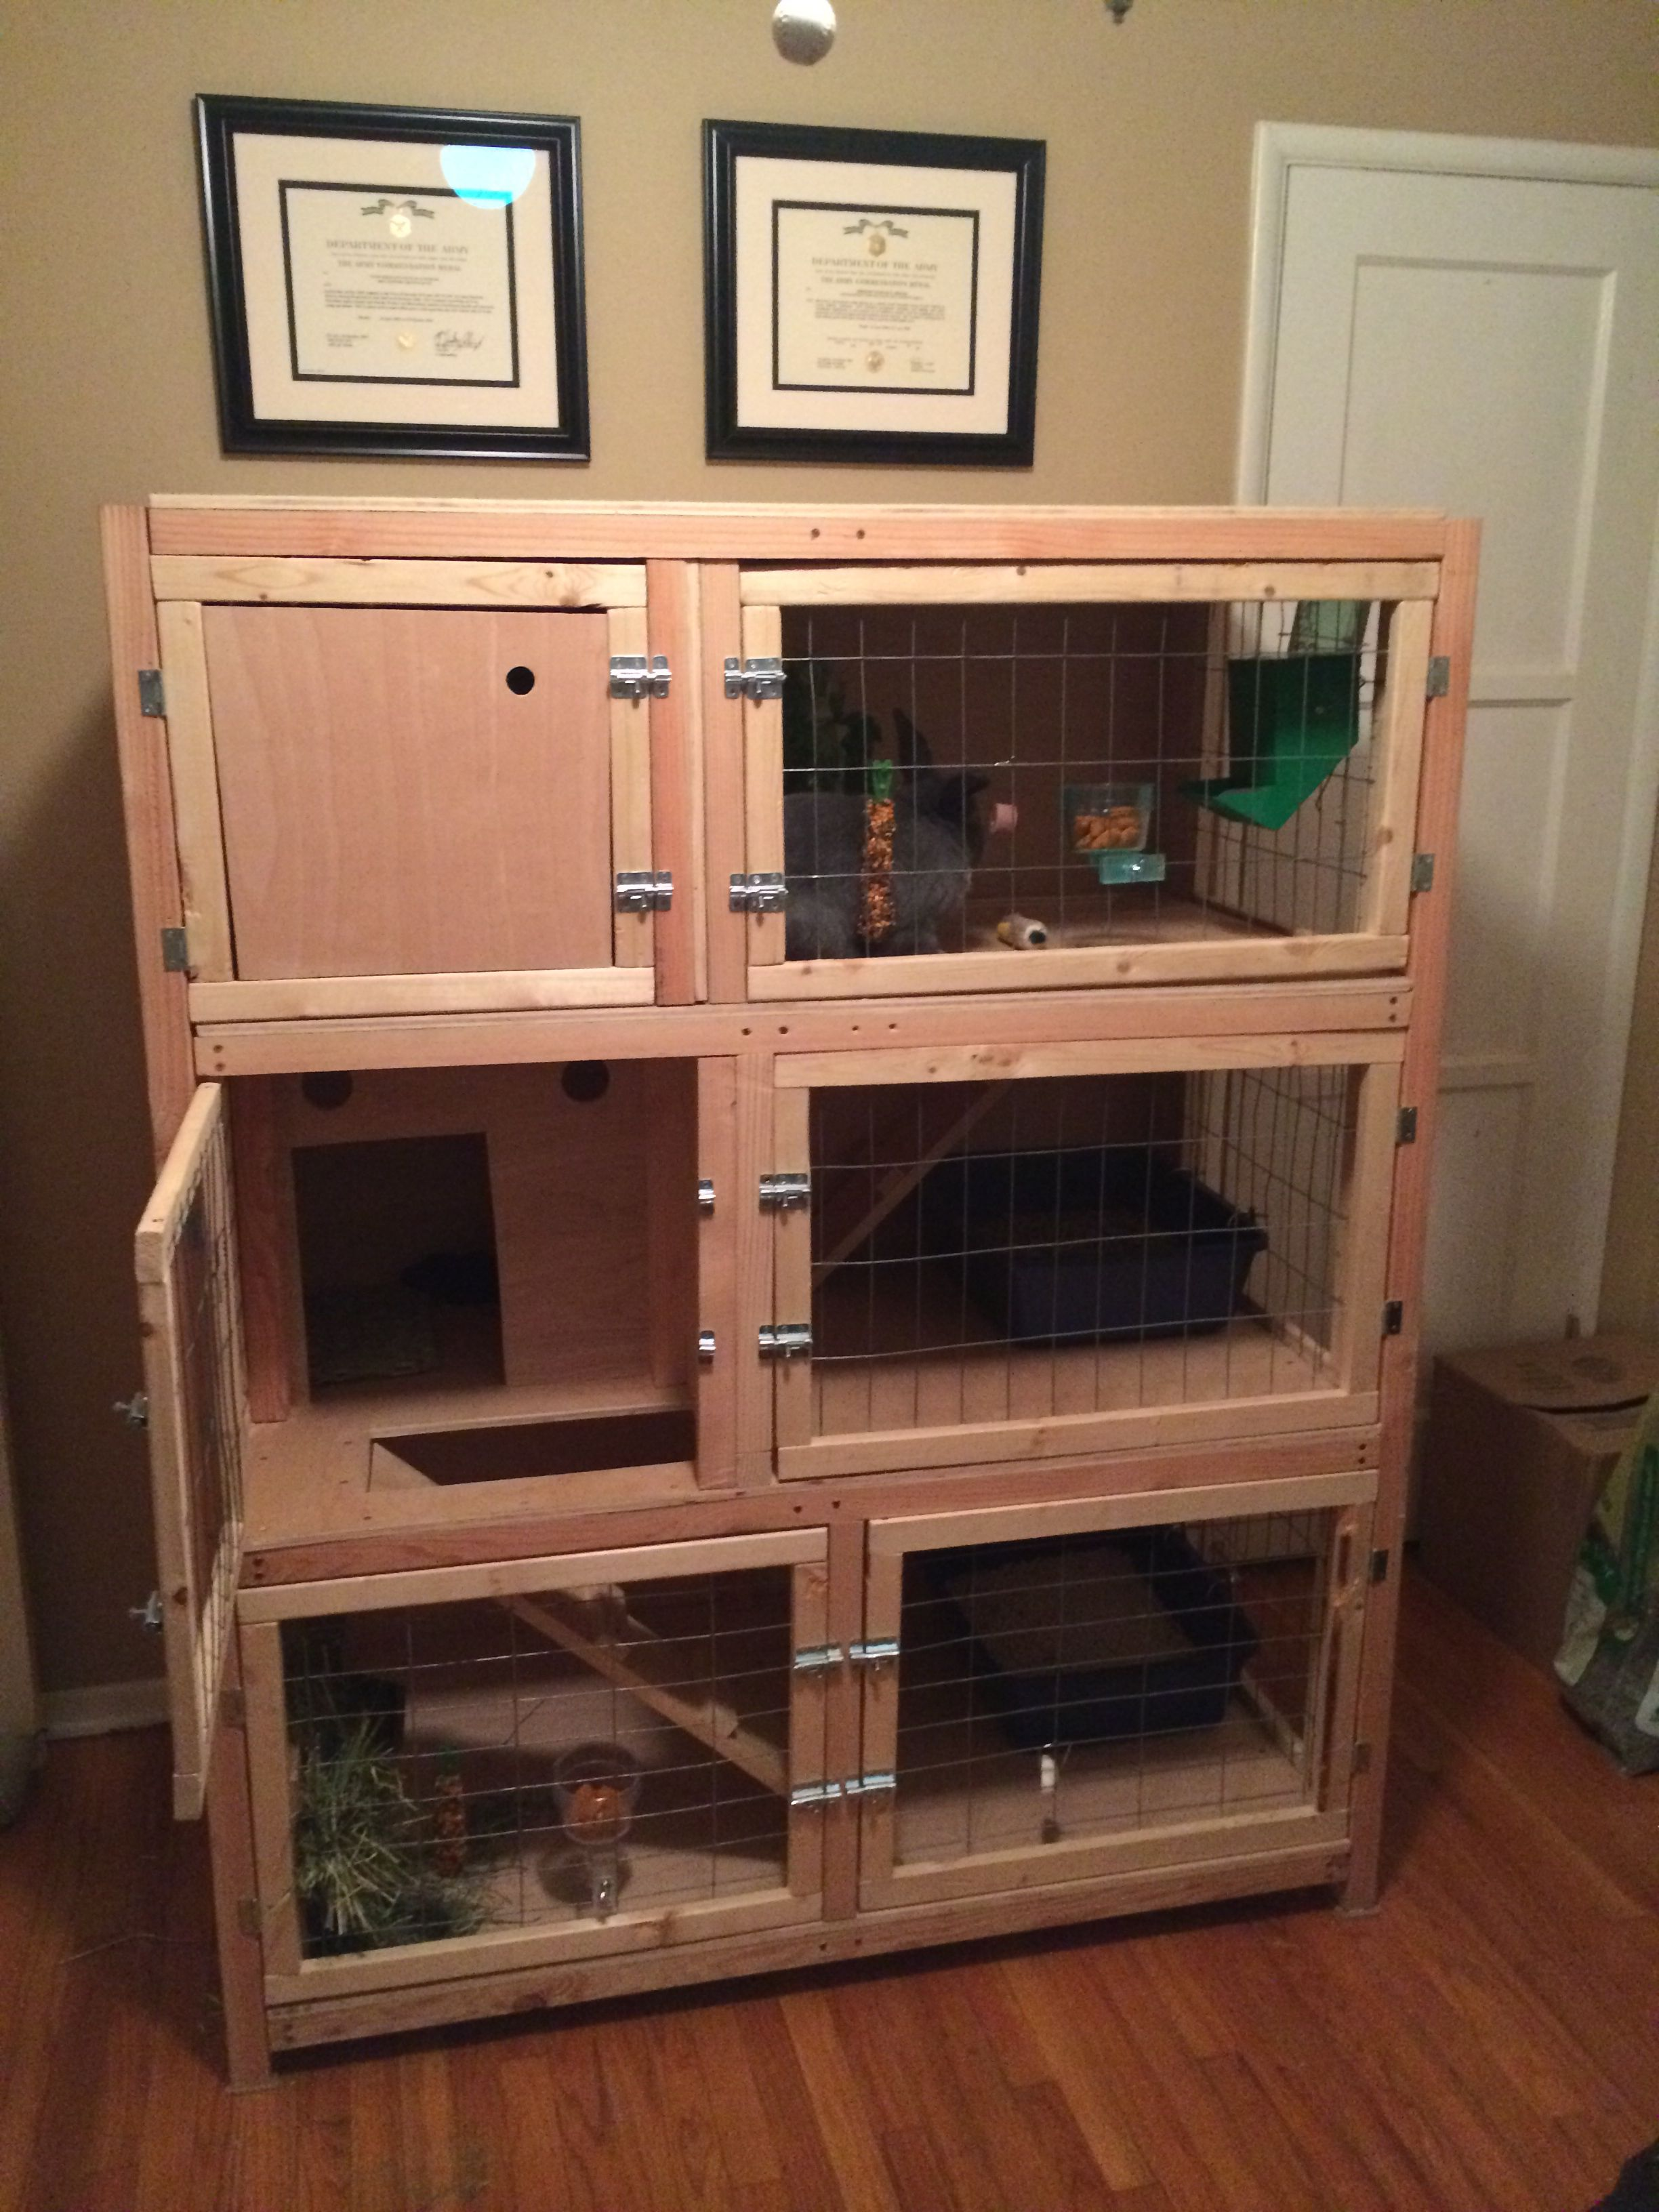 rabbit aspiration on prevue blue pet jumbo indoor hayneedle stand solid rabbits intended wood hutch for tub modern with cage